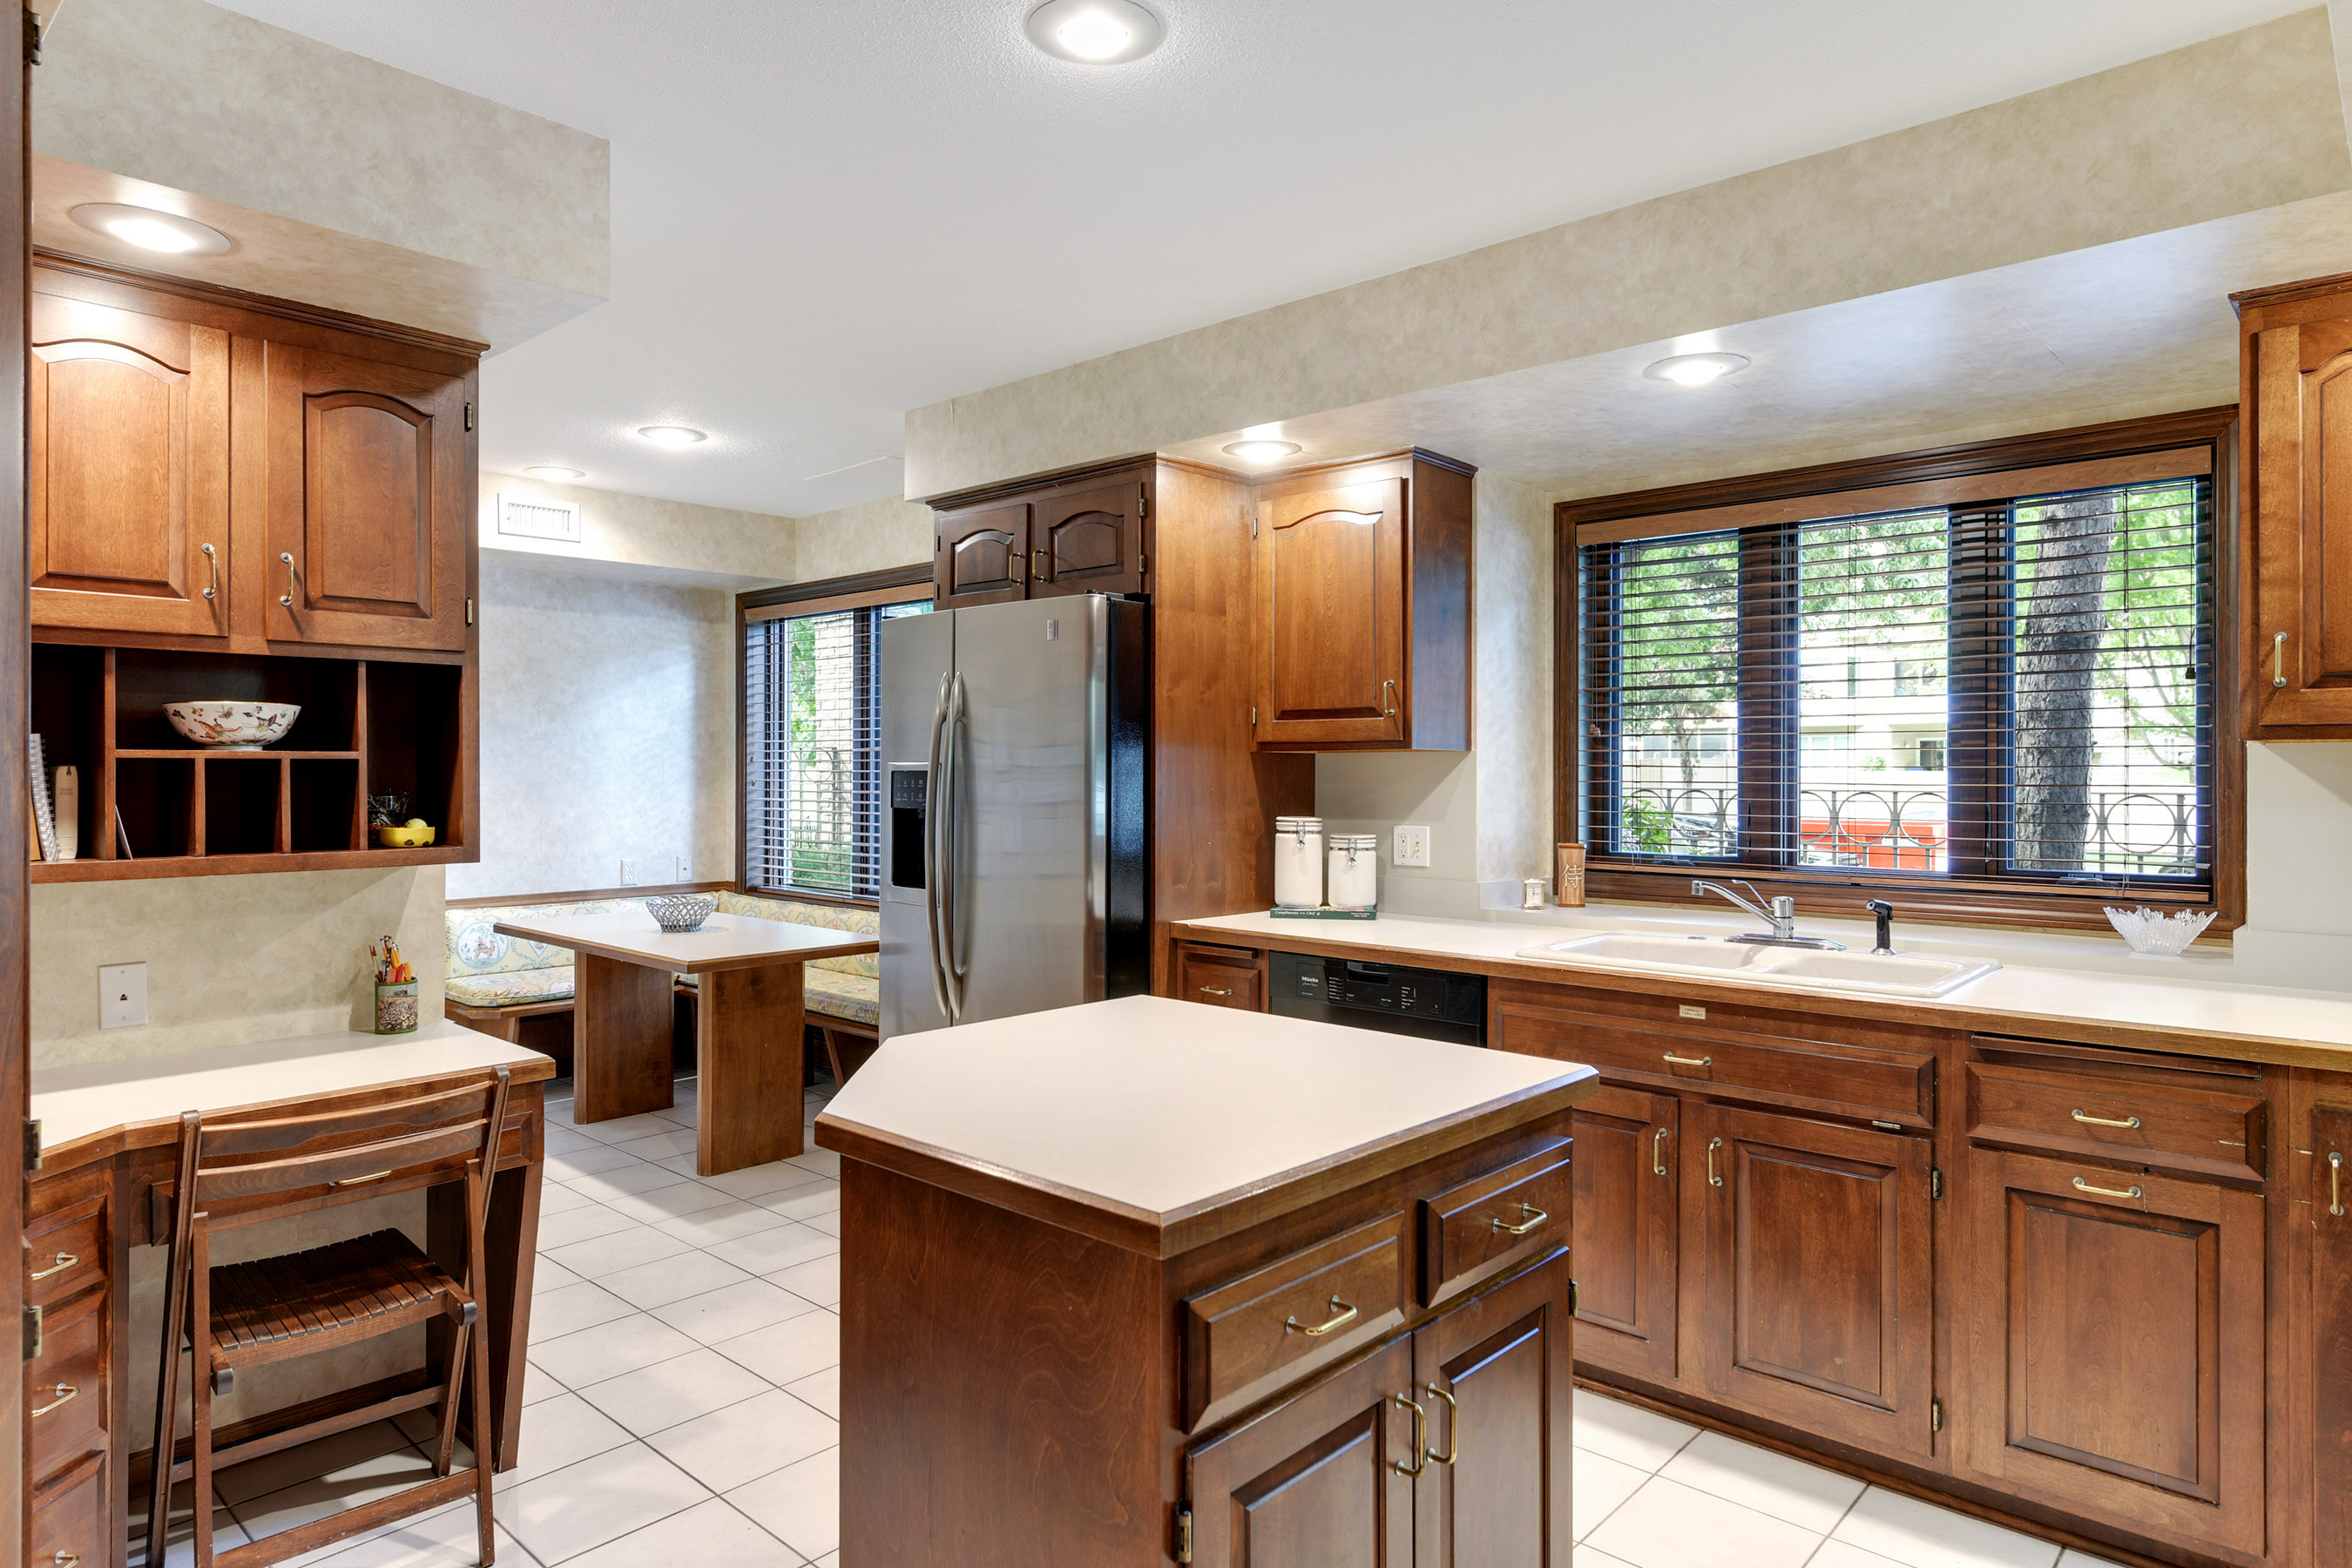 The center island kitchen features a cherrywood crystal kitchen (easy to enamel if desired) with 3 windows over the sink